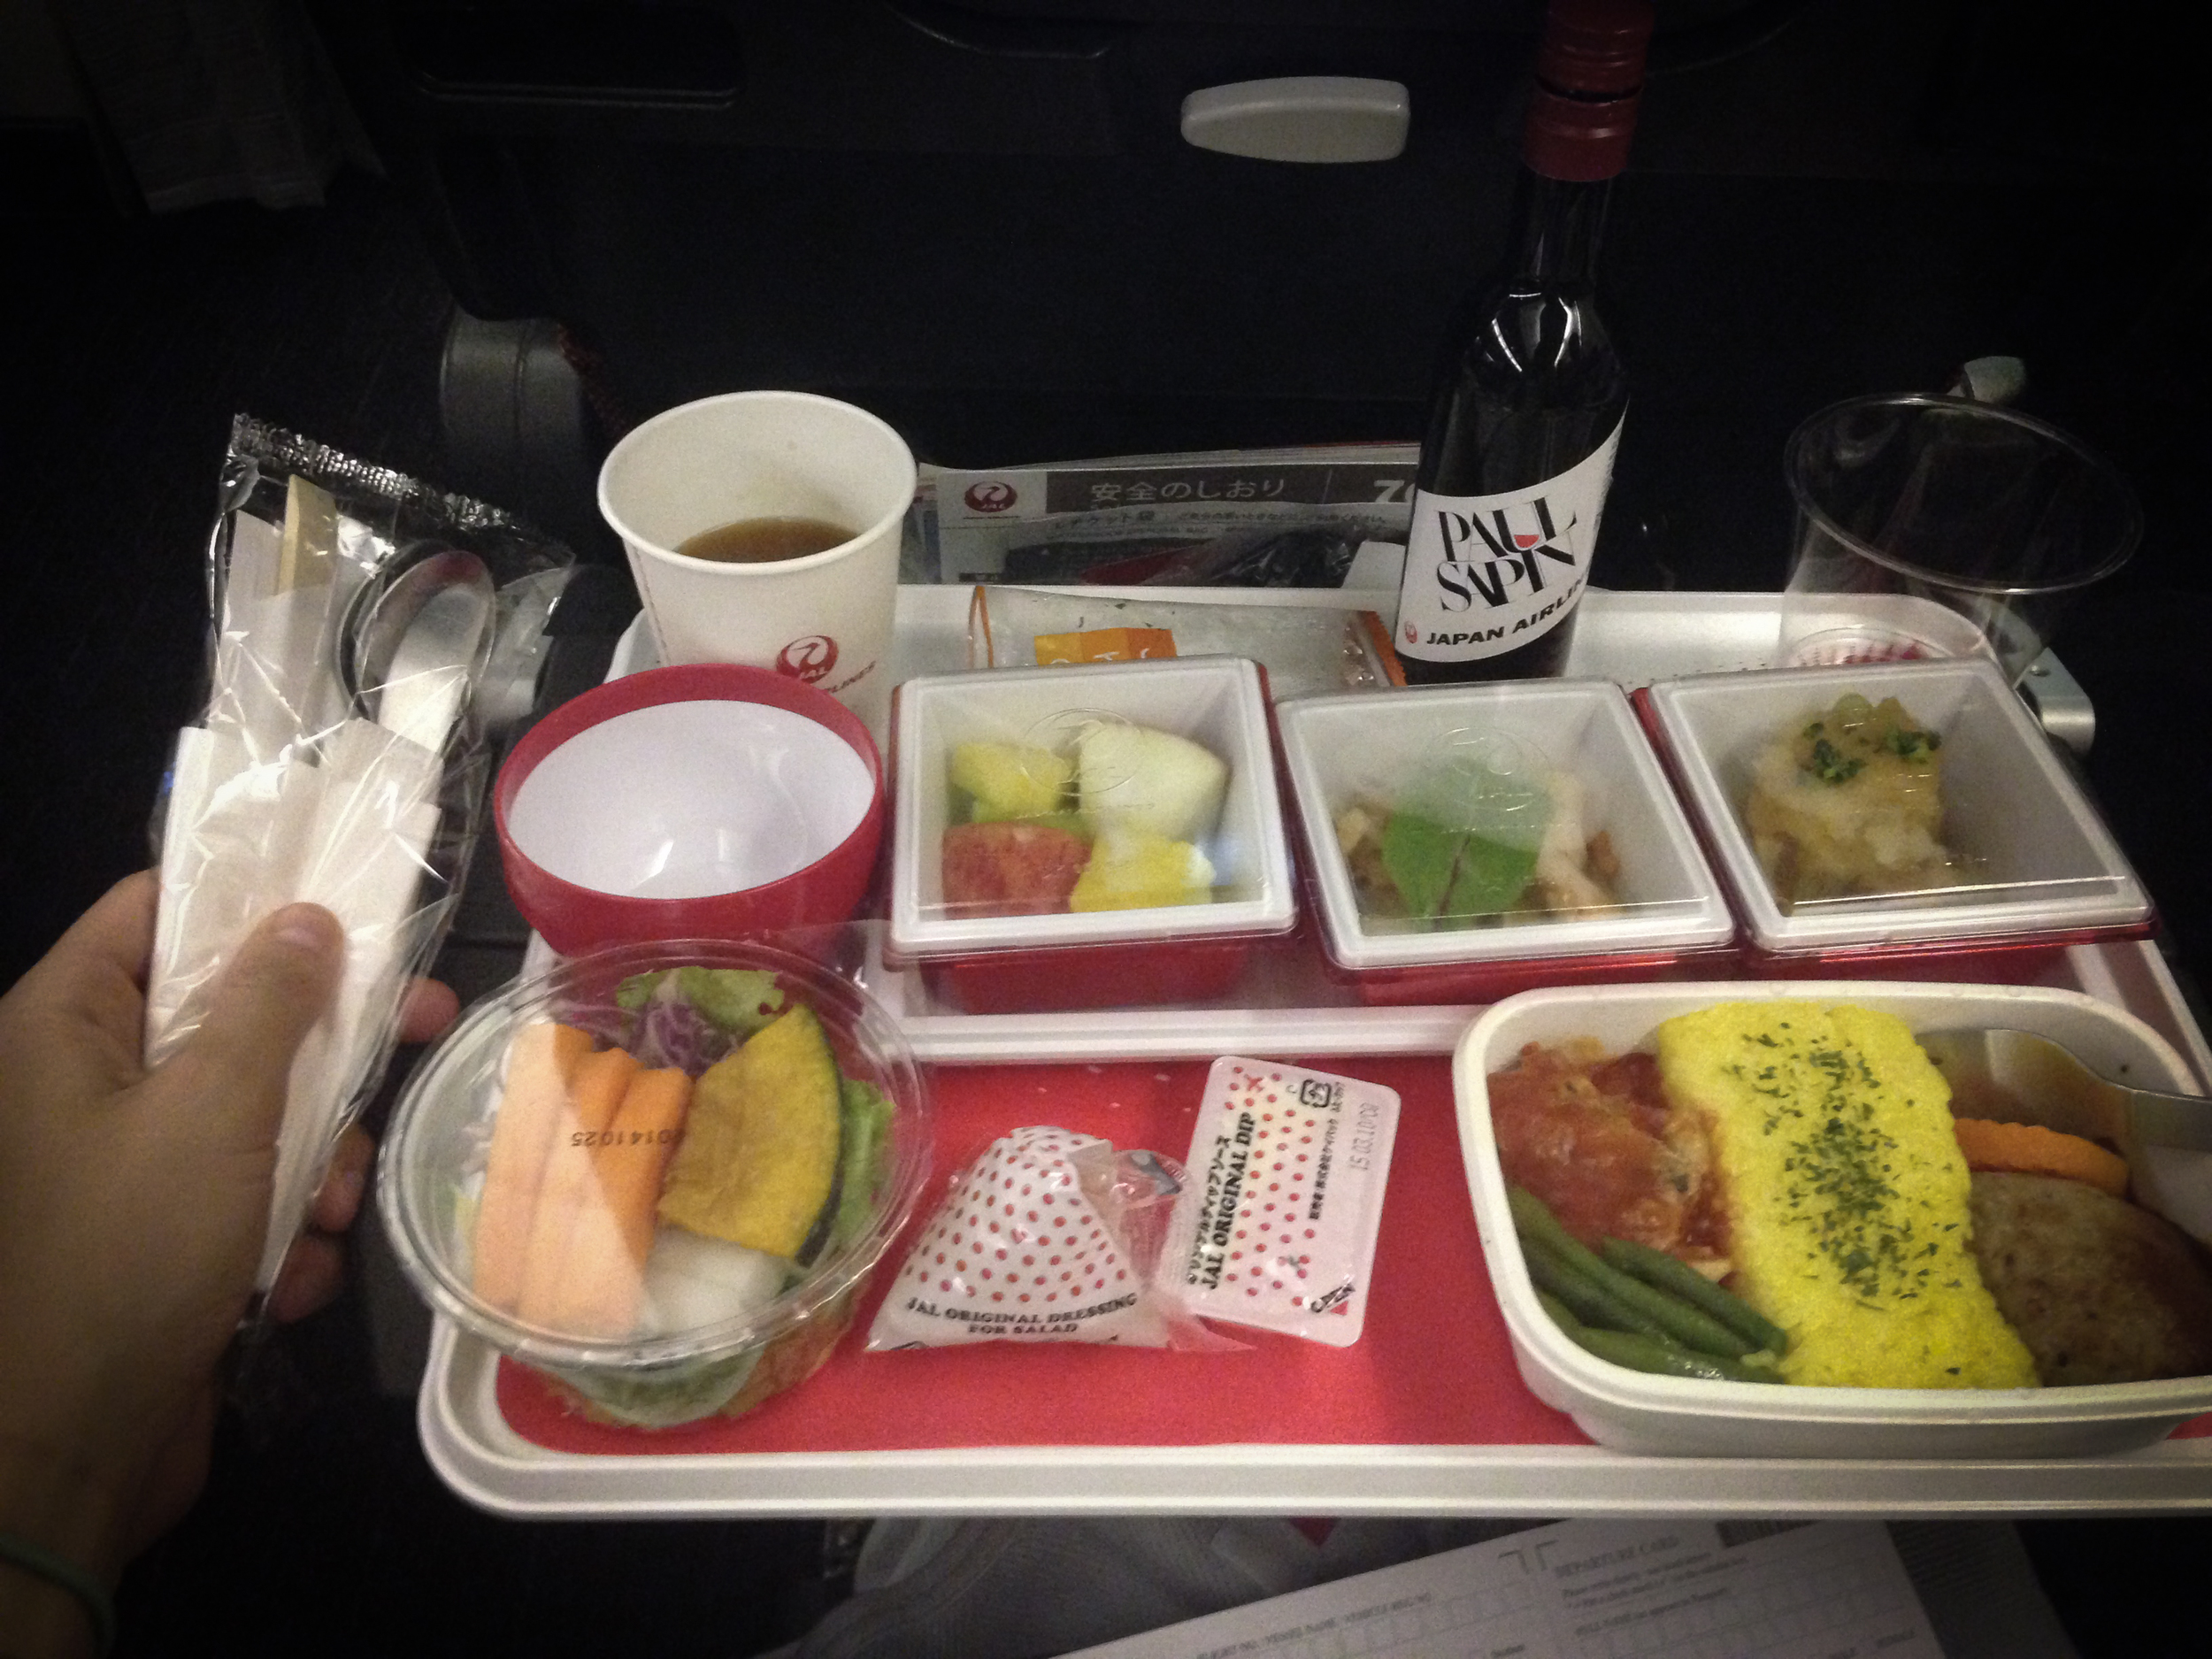 The Japan Airlines food was the best. With metal (not plastic!) utensils and wine!